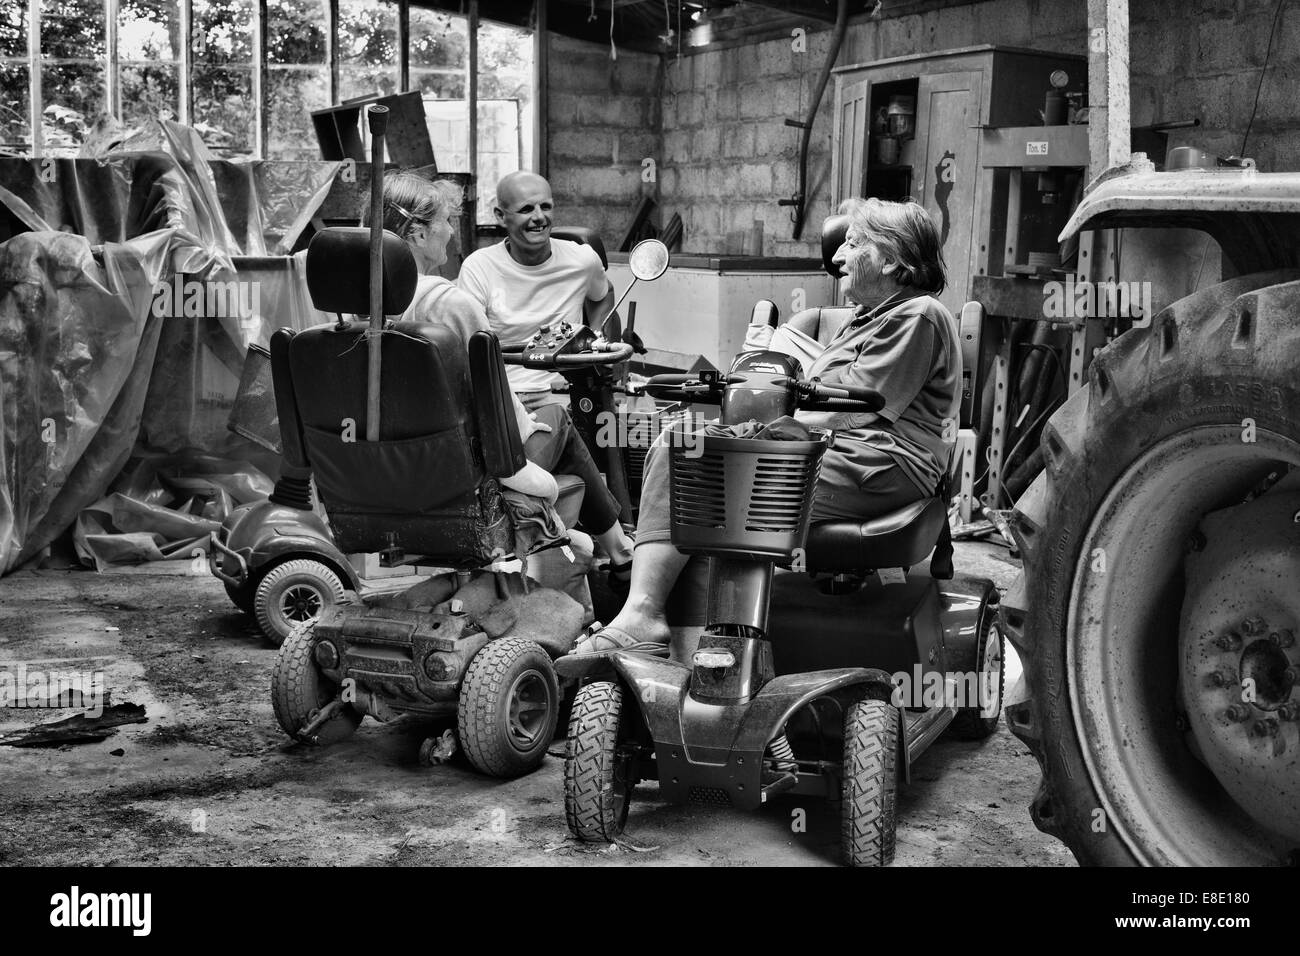 three people sitting on mobility scooters chatting in an old tractor shed - Stock Image